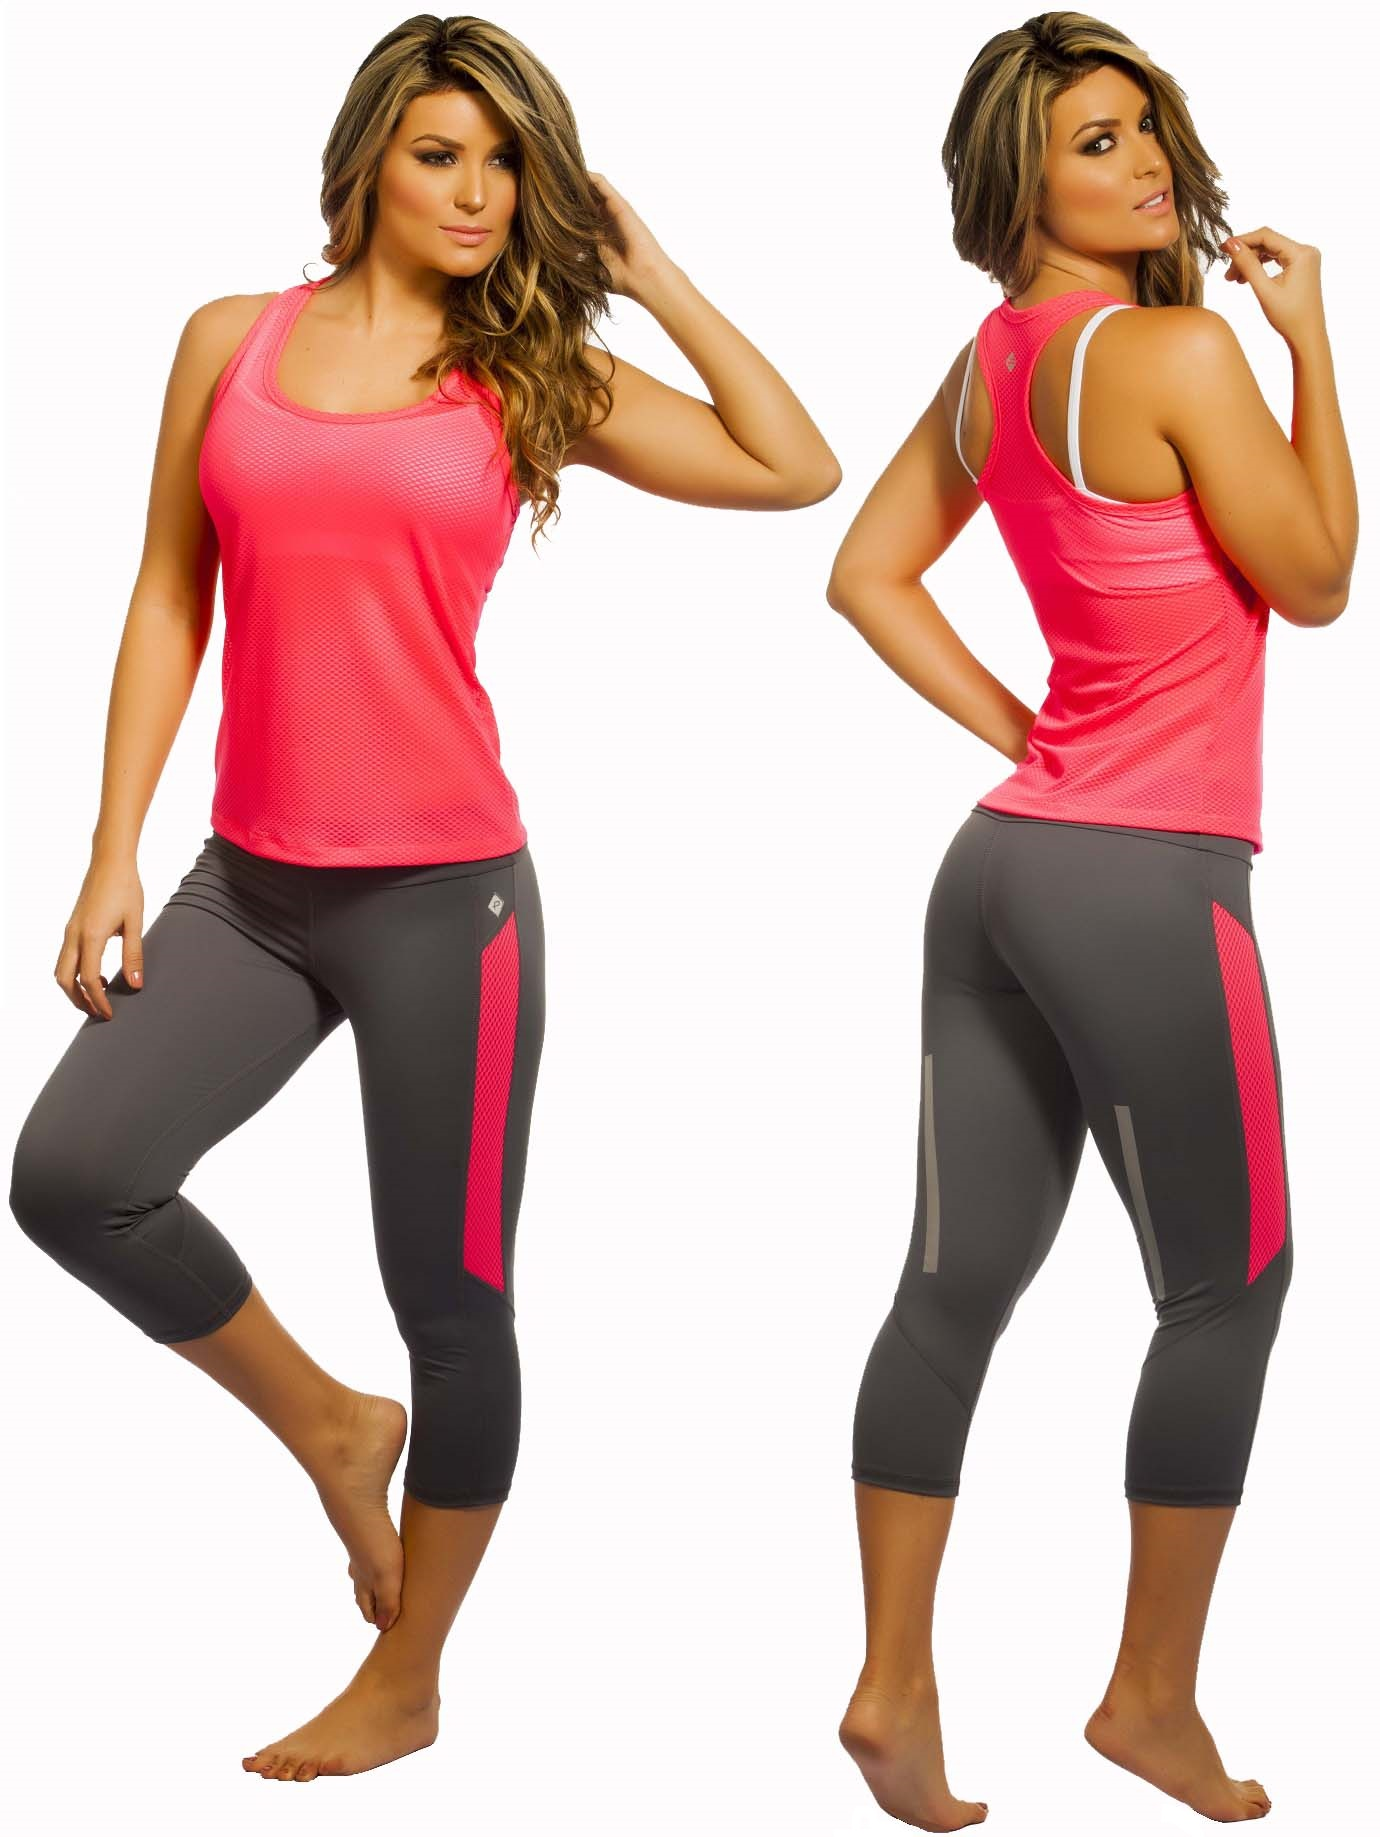 sports clothes protokolo 2694 women athletic activewerar workout wear sports clothing xpnqpoe